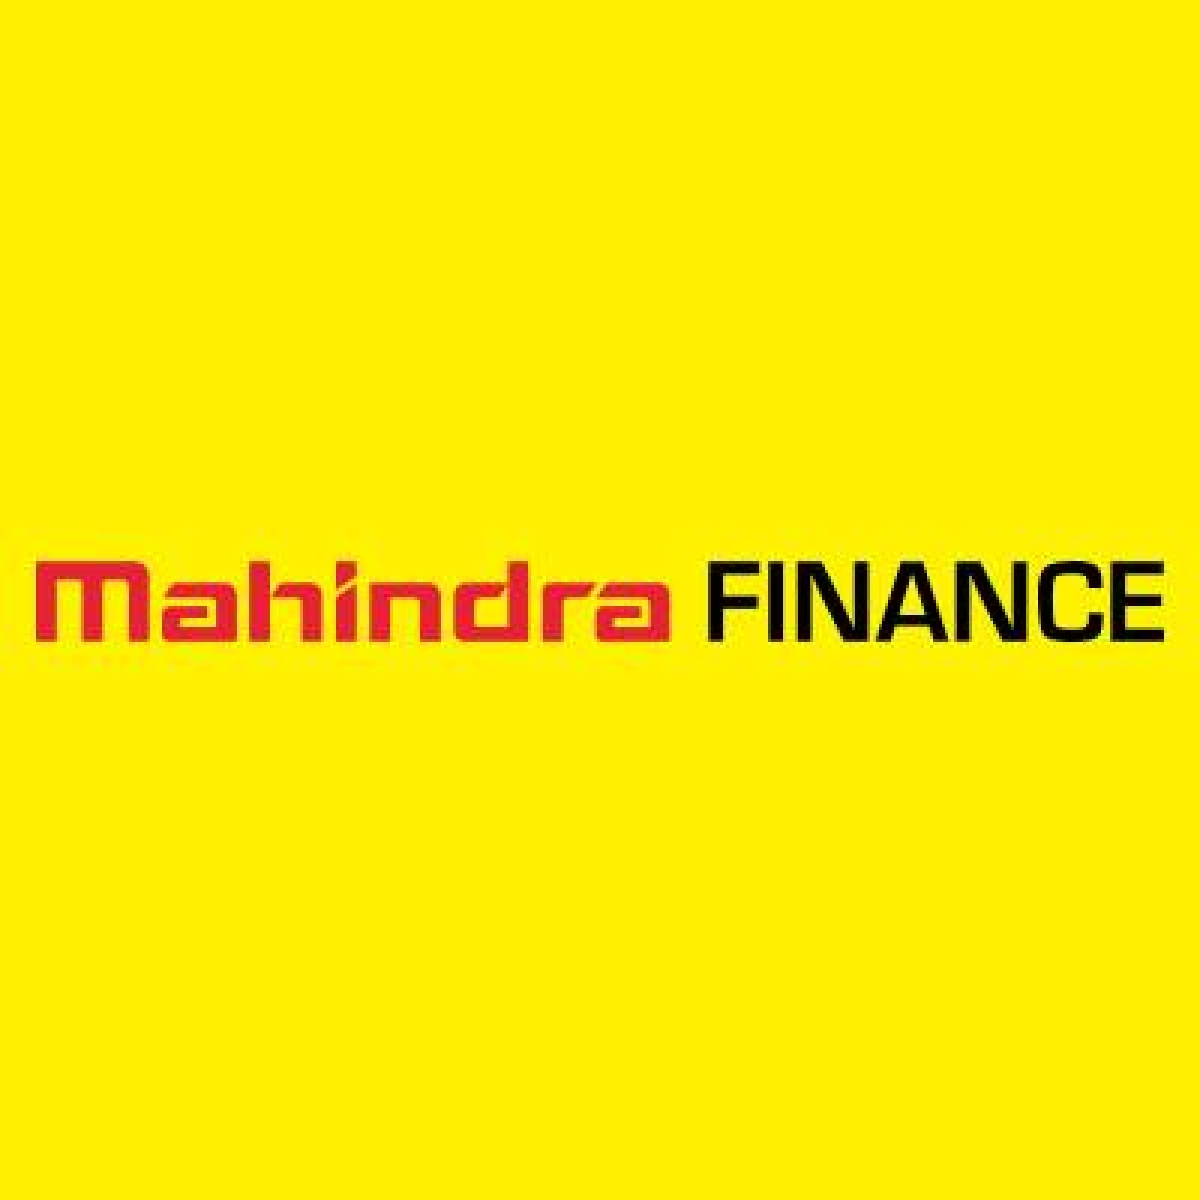 Results: Mahindra Finance net profit falls 8% to Rs 219 crore in March quarter